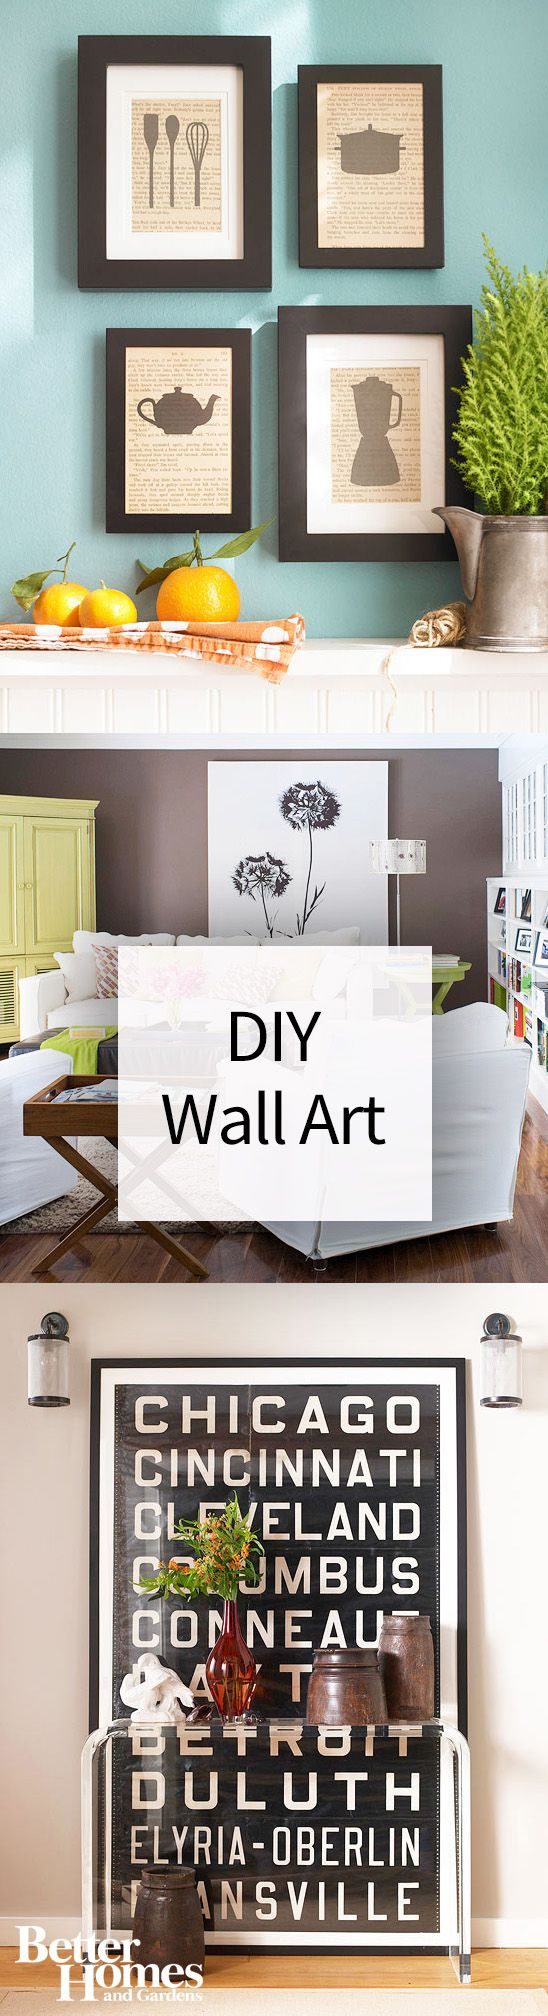 Have a blank wall in your living room, bedroom, or kitchen? These ideas will inspire you to create a gallery wall or hang wall art in frames to spice up the plain white wall. Your home will look more finished and beautiful once you've hung pictures and art on the walls.